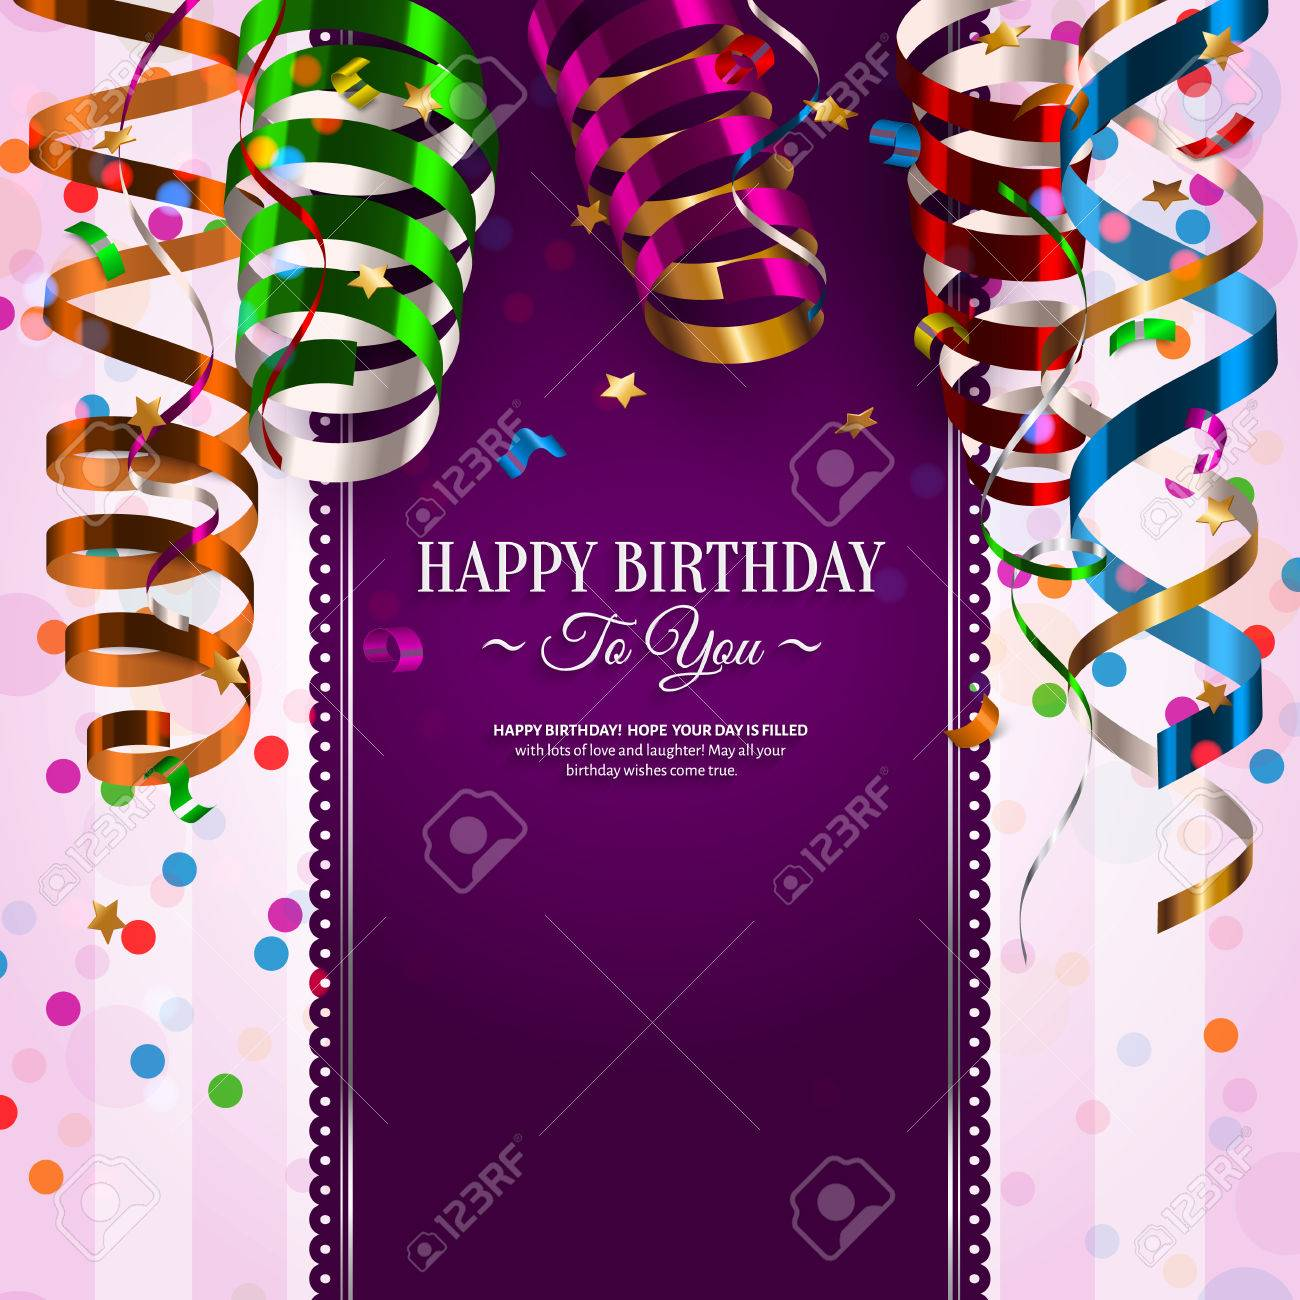 Vector birthday card with colorful curling ribbons, streamers. - 40976998